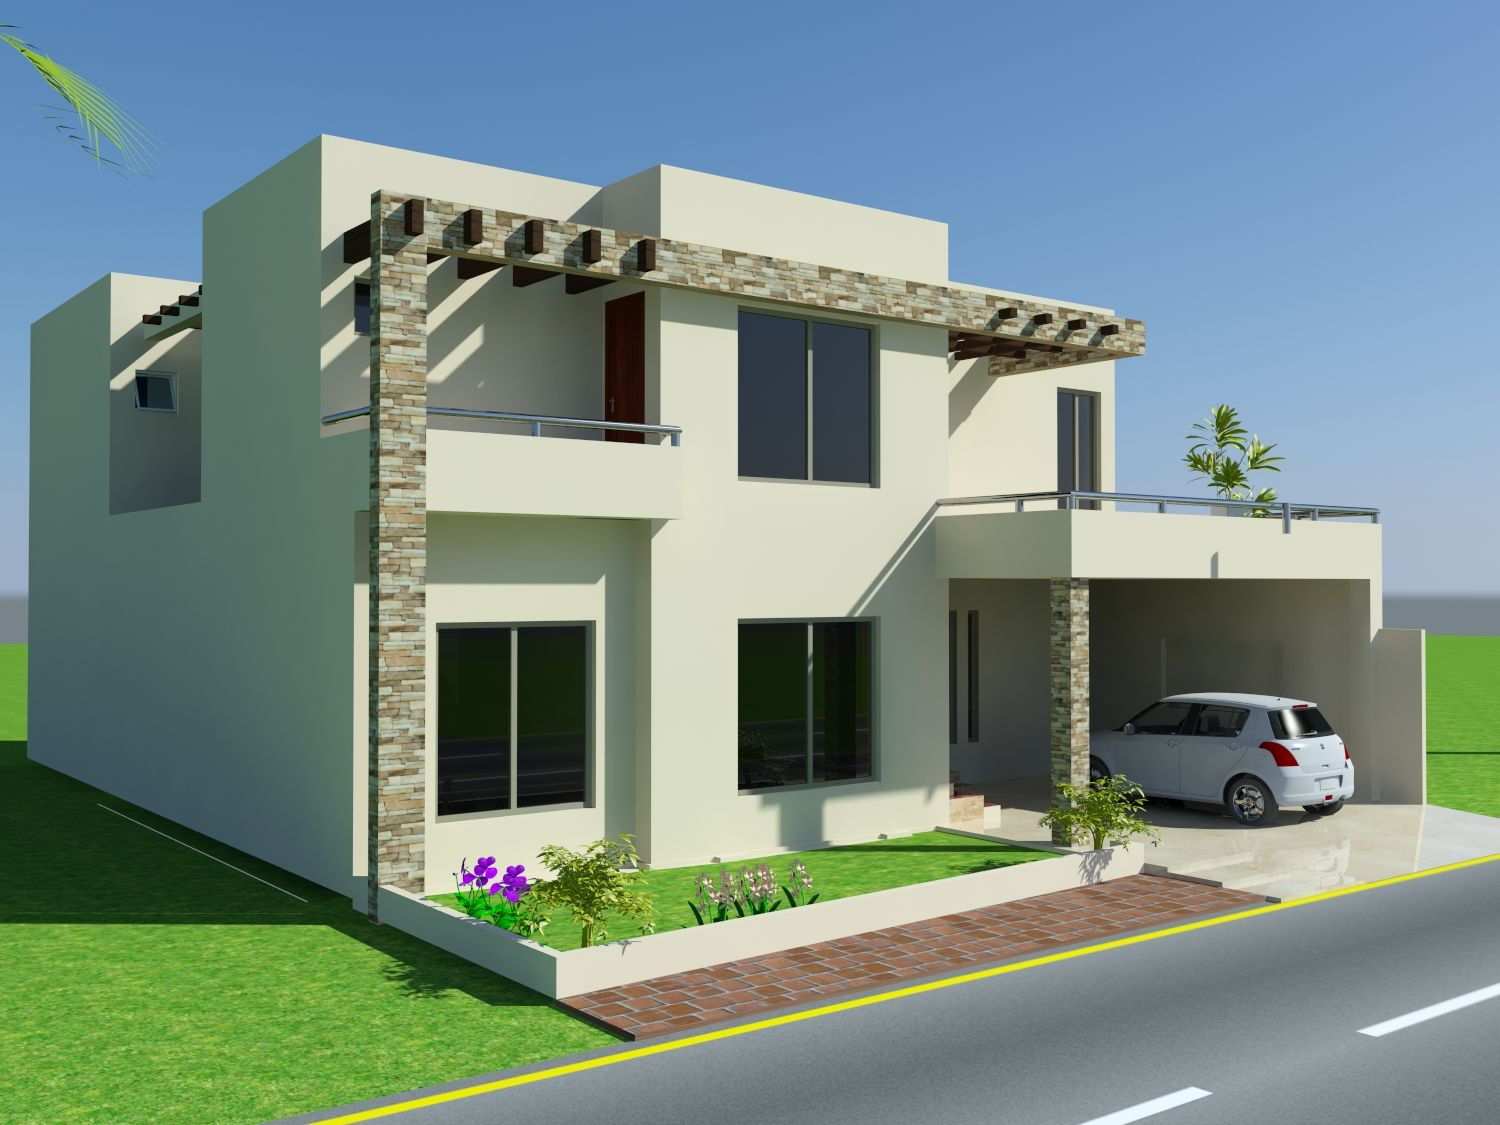 3d front elevation com 10 marla house design mian wali pakistan house design pinterest - D home design front elevation ...